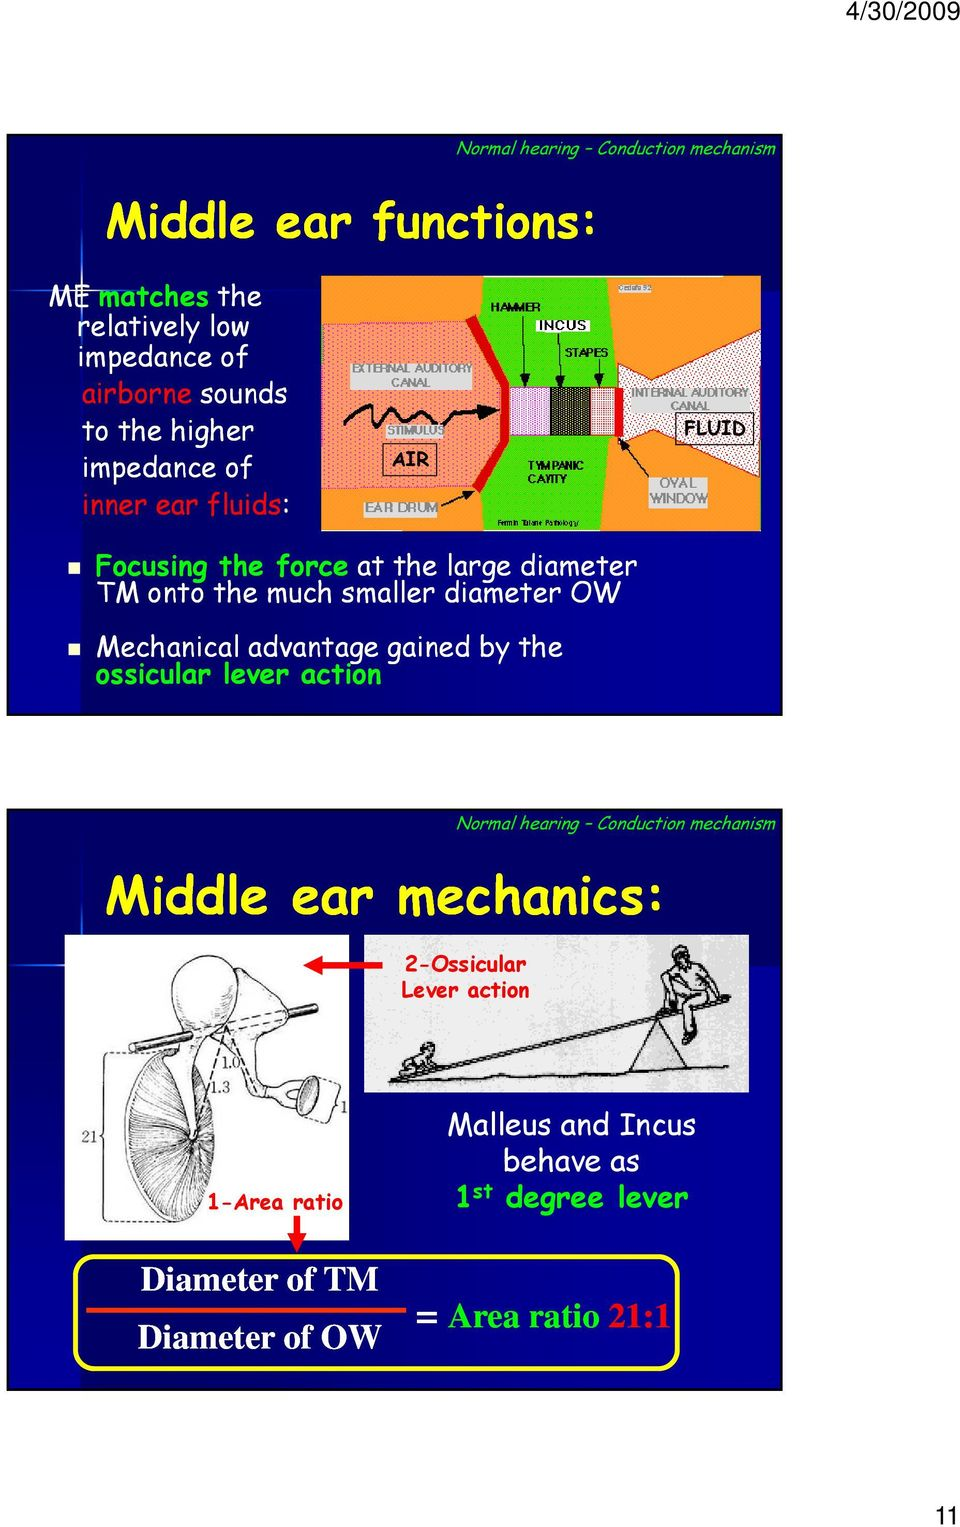 OW Mechanical advantage gained by the ossicular lever action Normal hearing Conduction mechanism Middle ear mechanics: